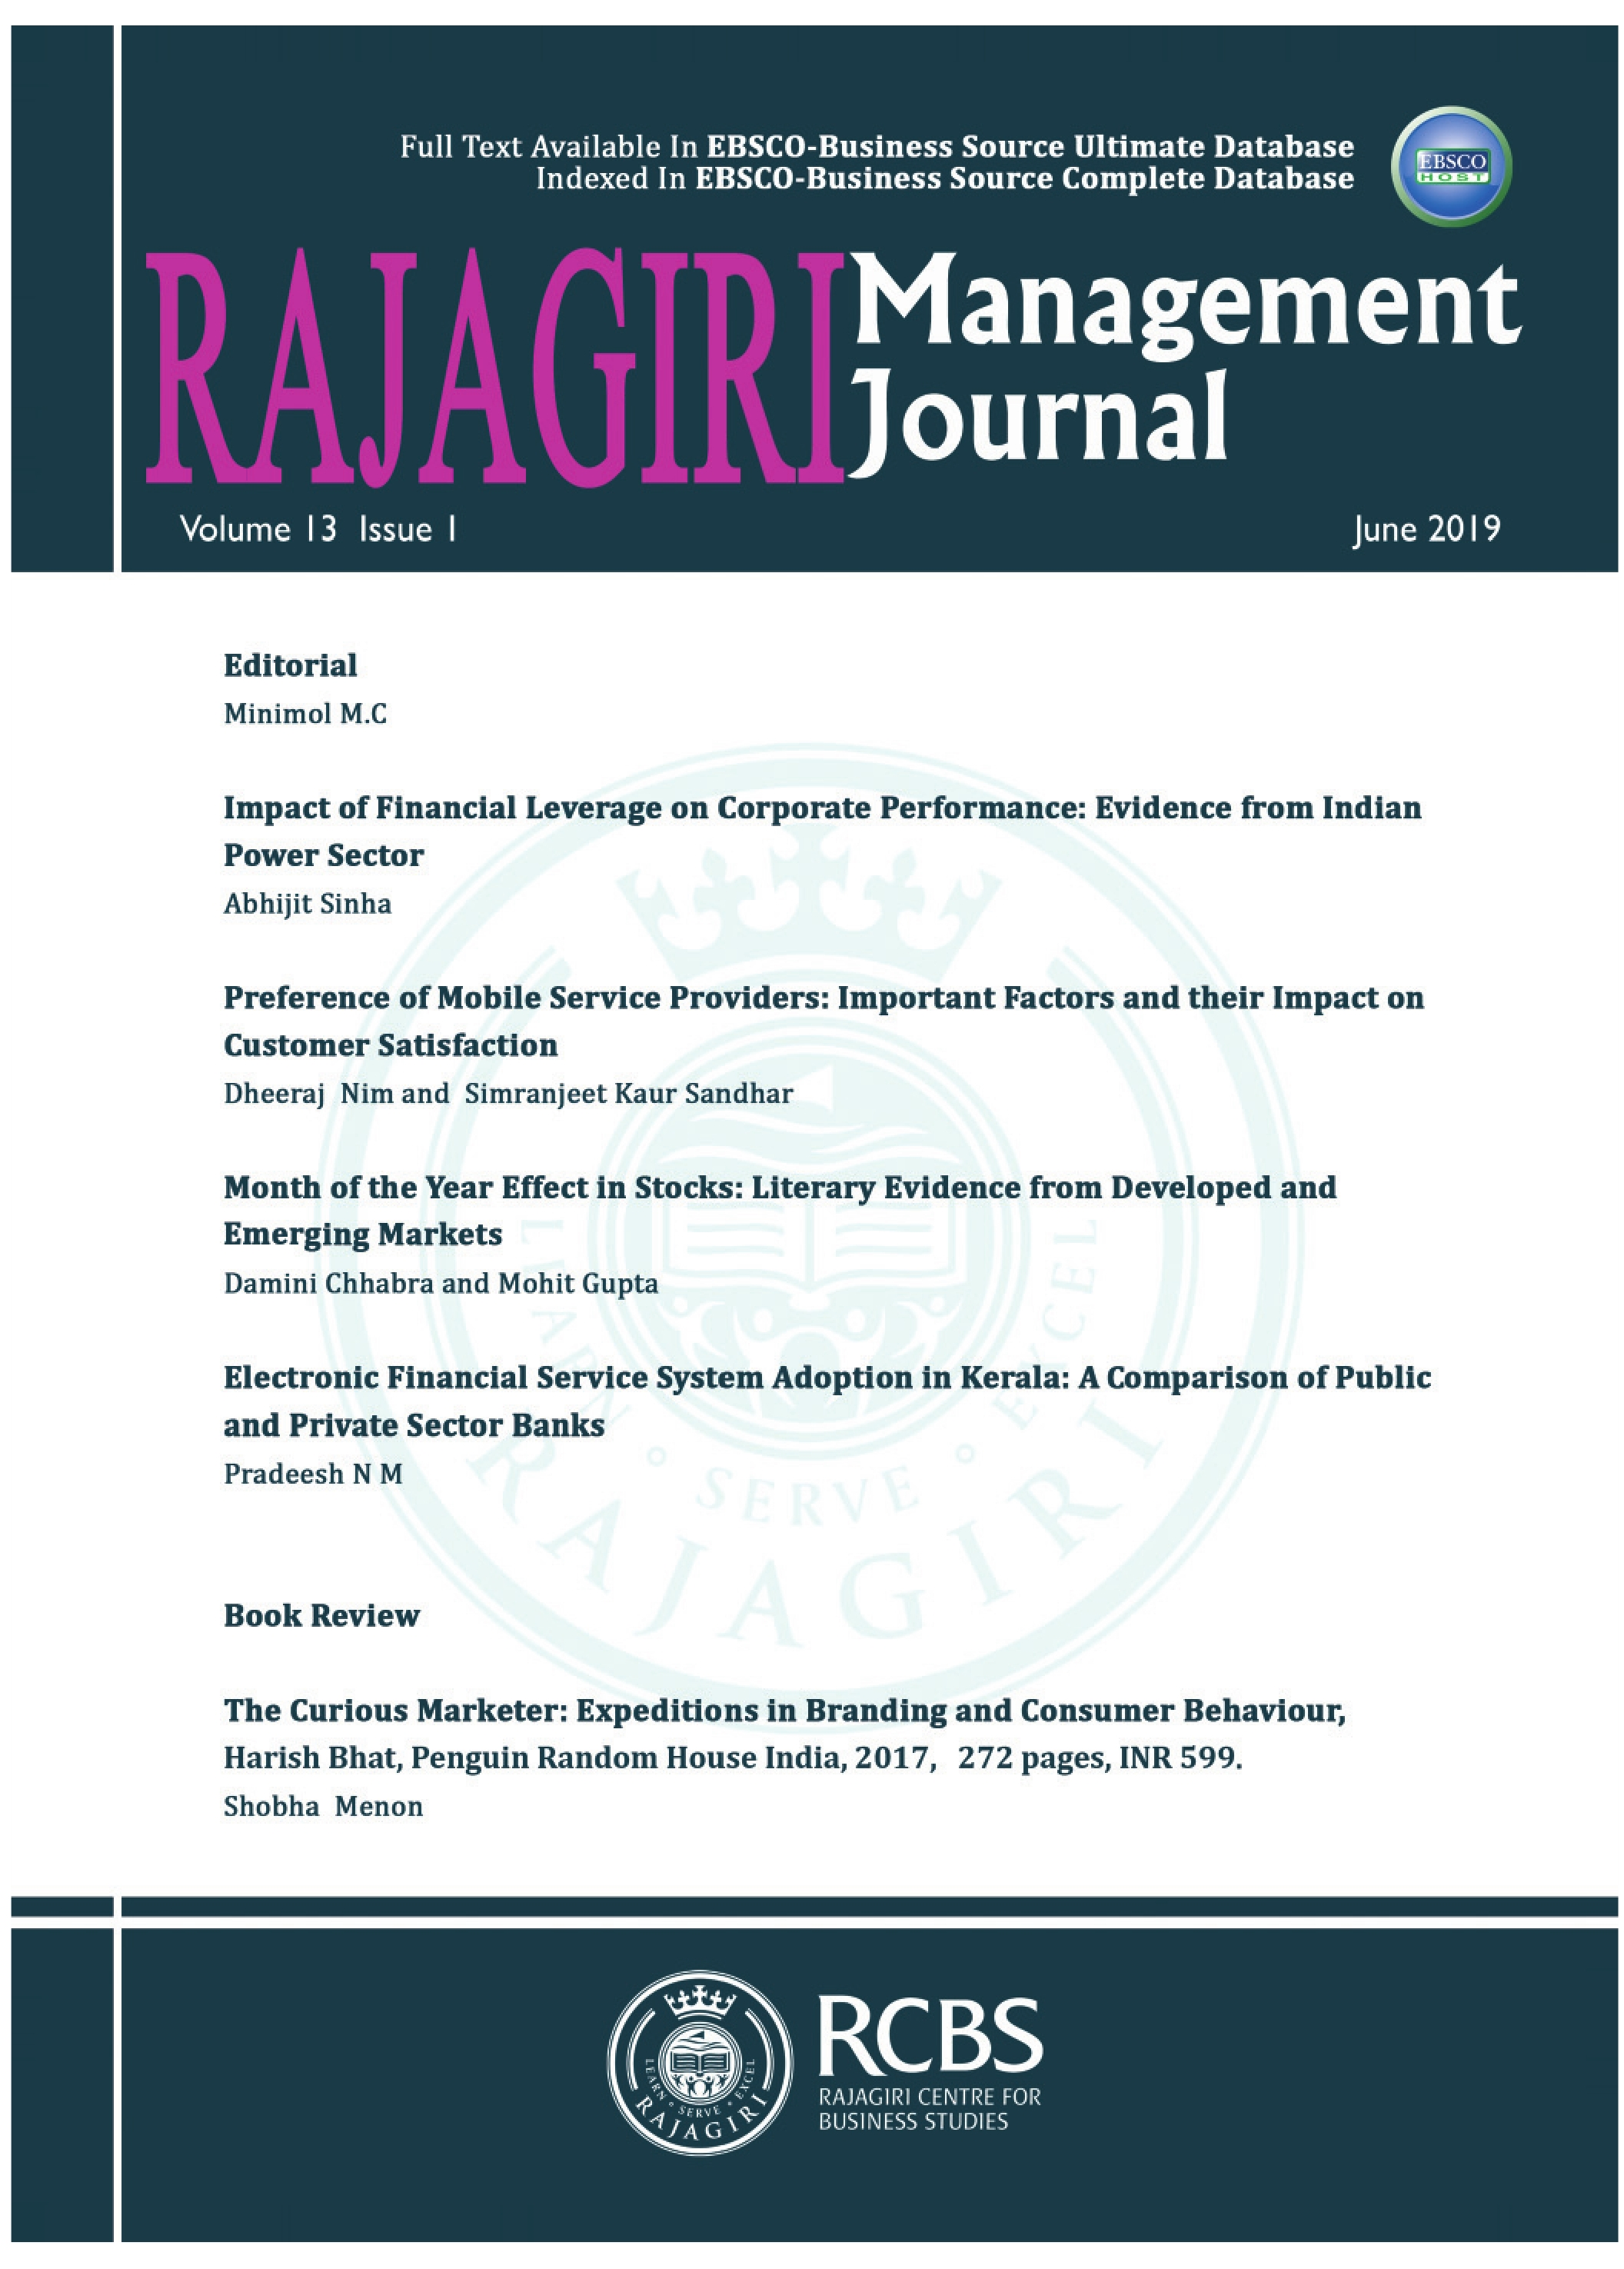 Rajagiri Management Journal